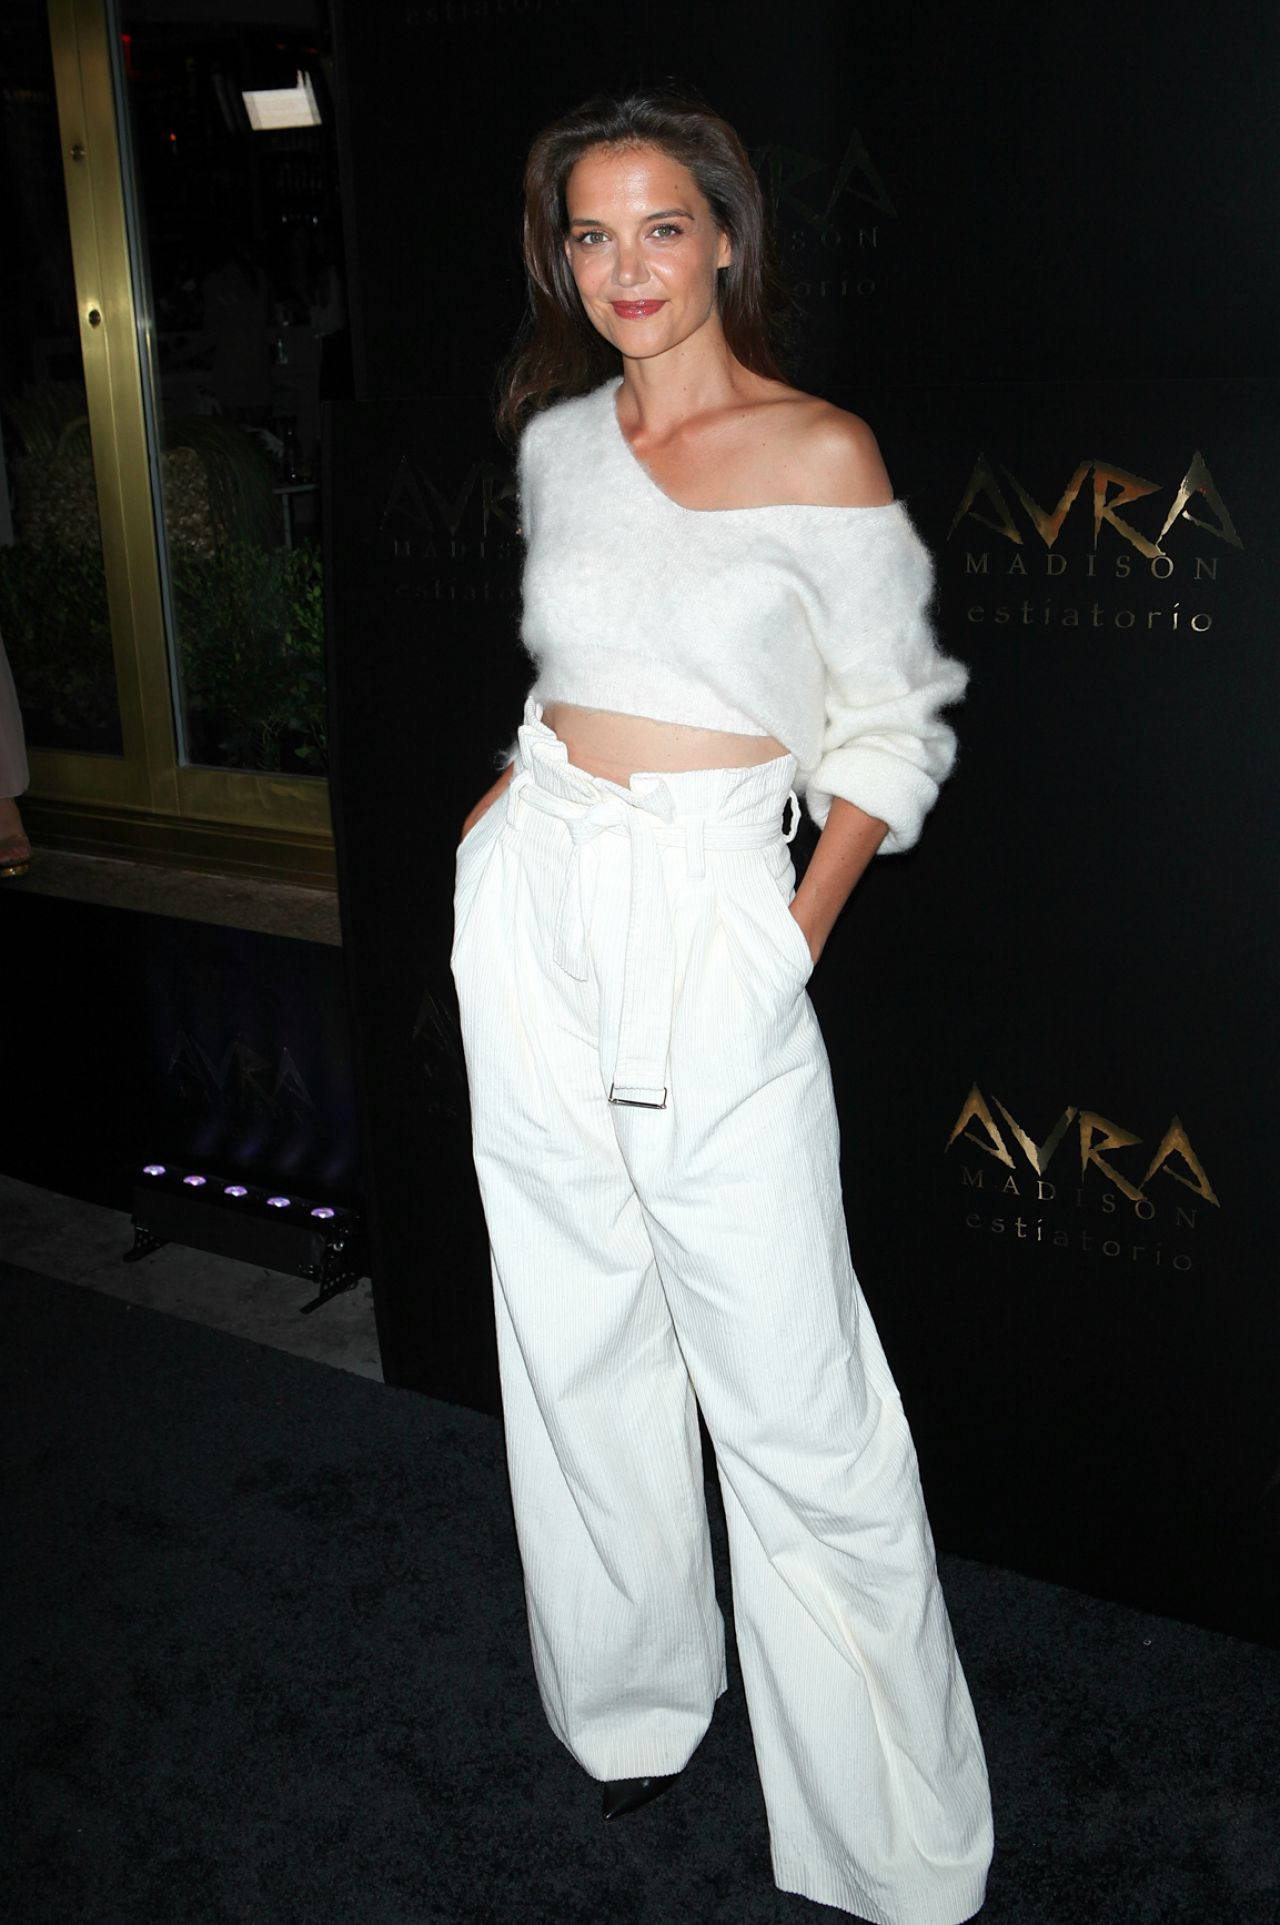 Katie Holmes Arva Madison Grand Opening In New York City